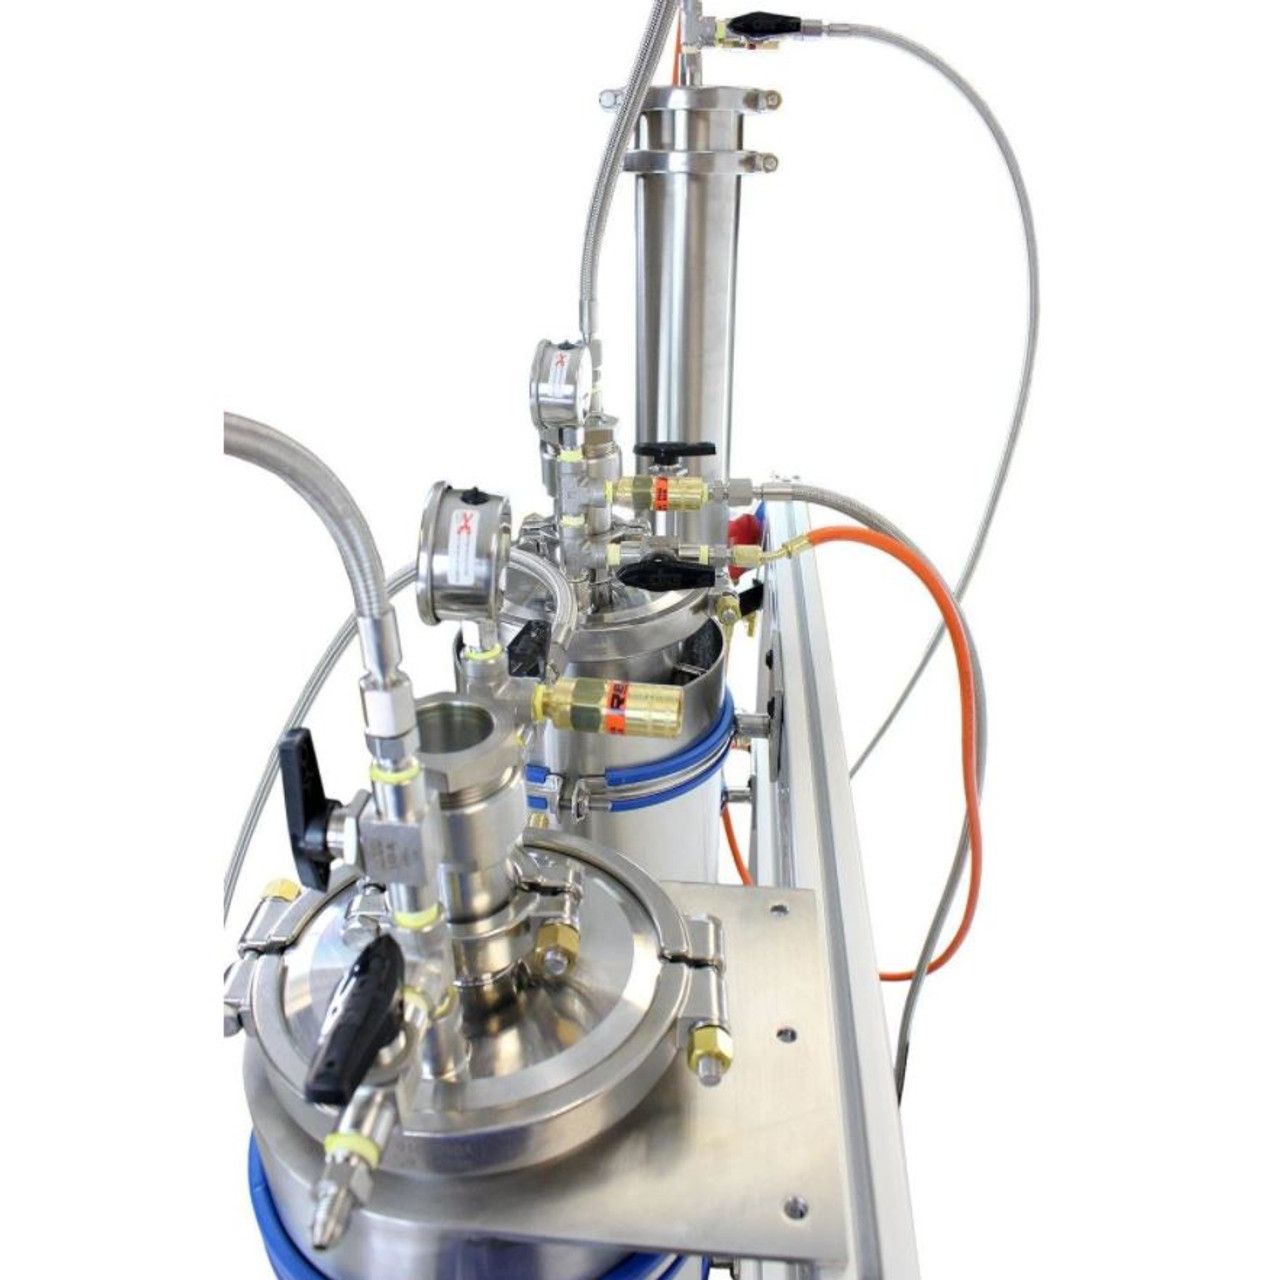 PSI Certified Poseidon Closed Loop Extraction System